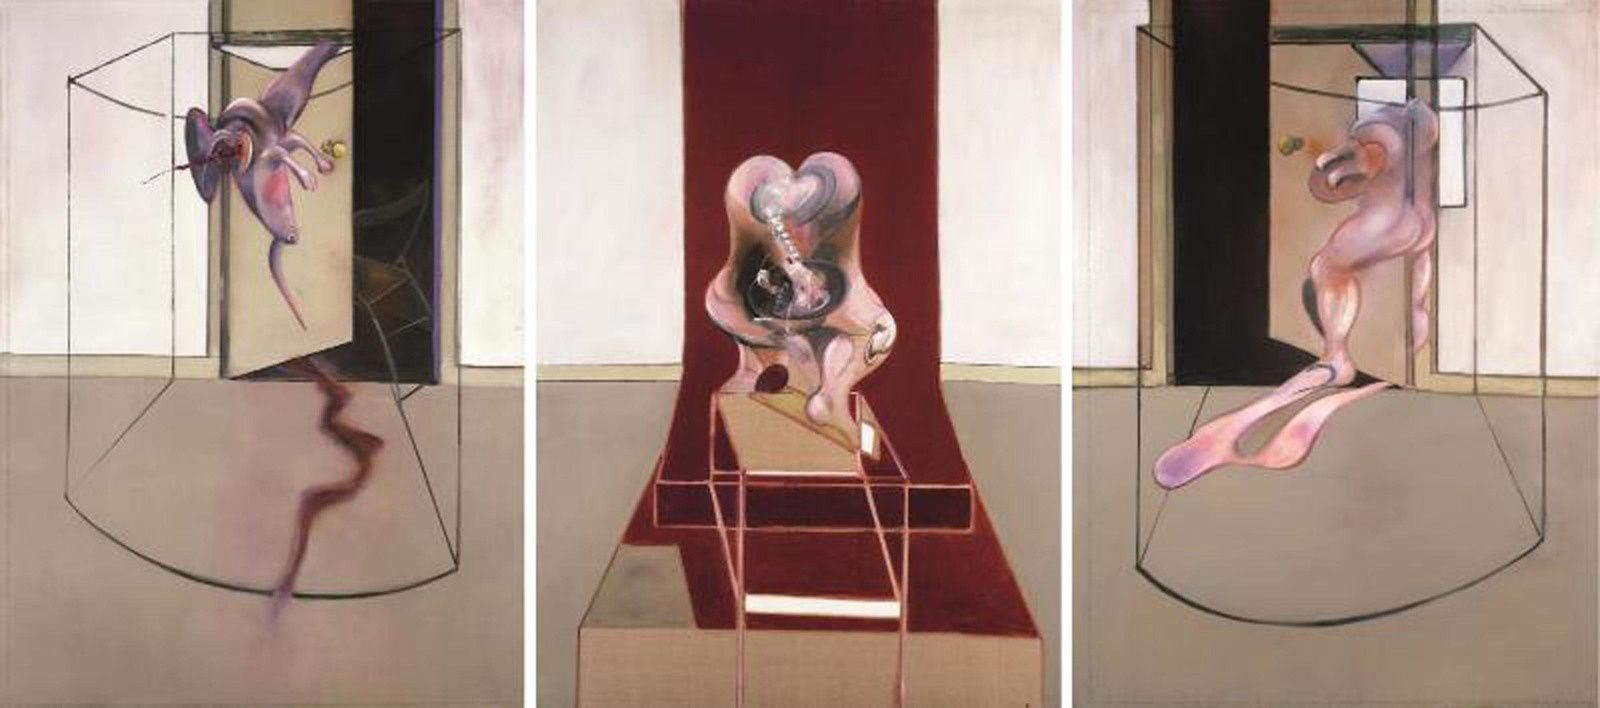 """Triptych Inspired by the Oresteia of Aeschylus"", 1981 de Francis BACON - astrup Fearnley muse et fur moderne Kunst, oslo © the estate of Francis bacon /all rights reserved / adagp, paris and dacs, london 2019 © the estate of Francis bacon. all rights reserved. dacs/artimage 2019. photo: prudence cuming associates ltd"